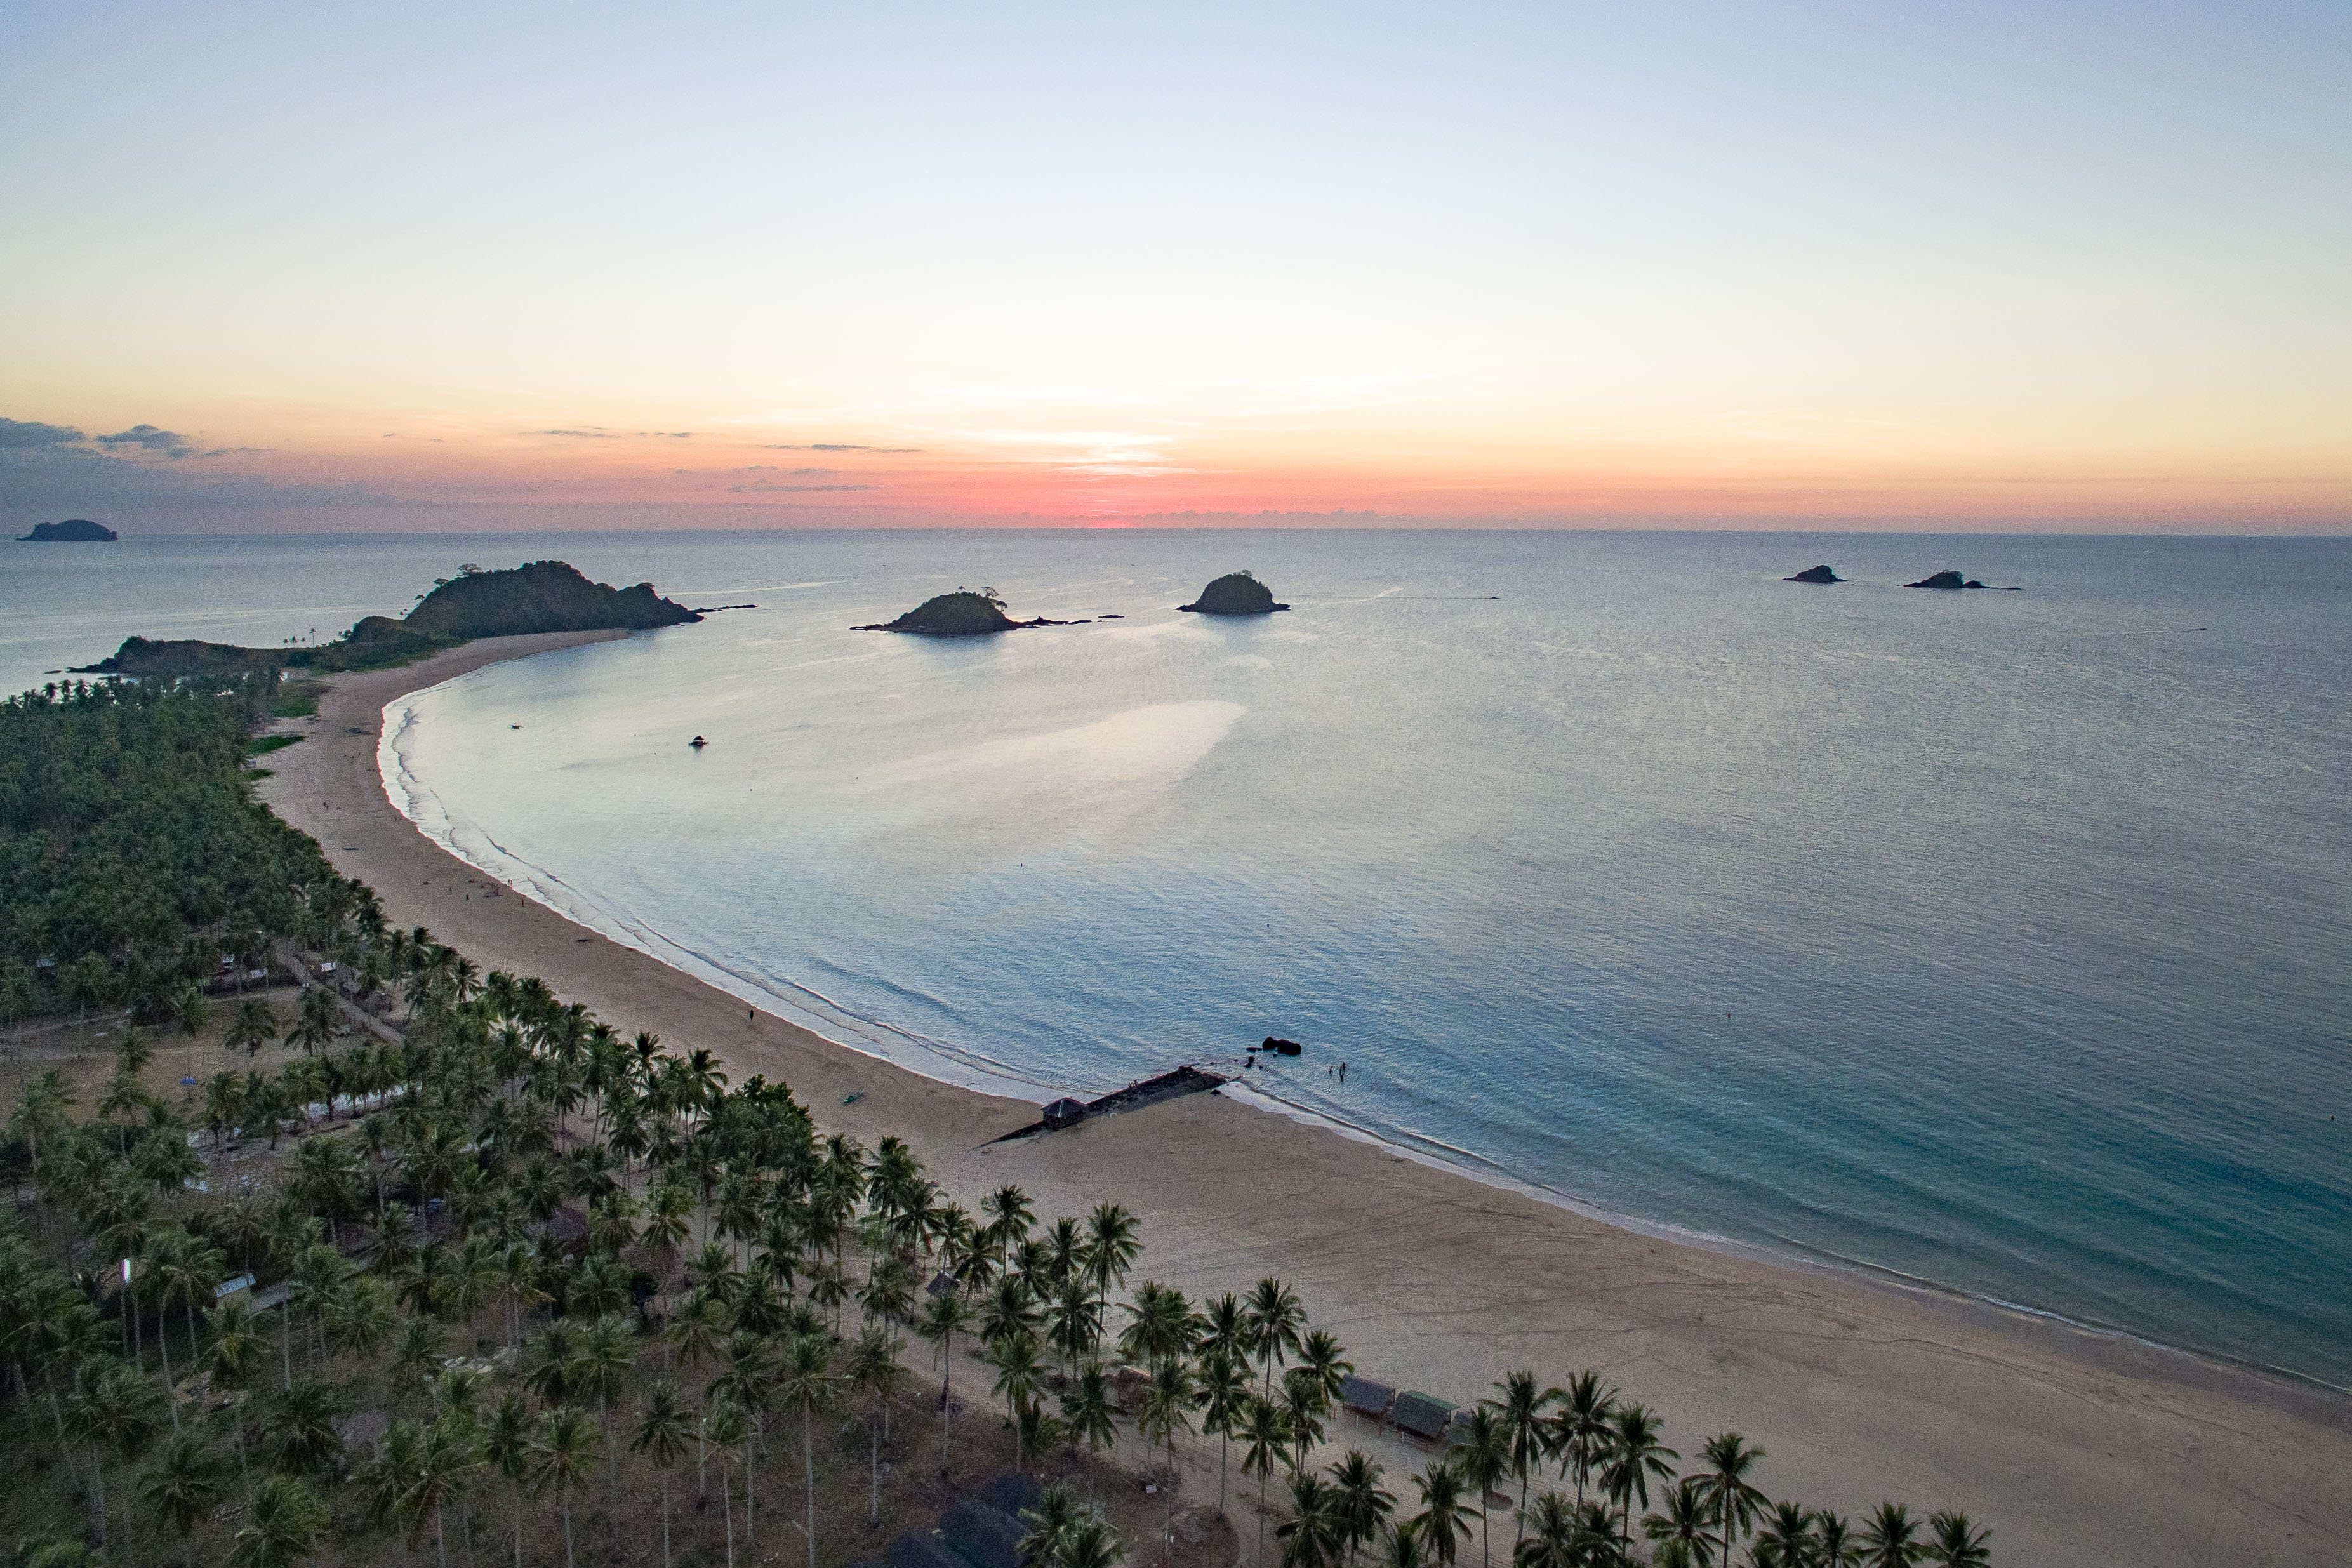 Vlog Expedition Violette Vauchelle Philippines El Nido Nacpan Beach sunset drone-1